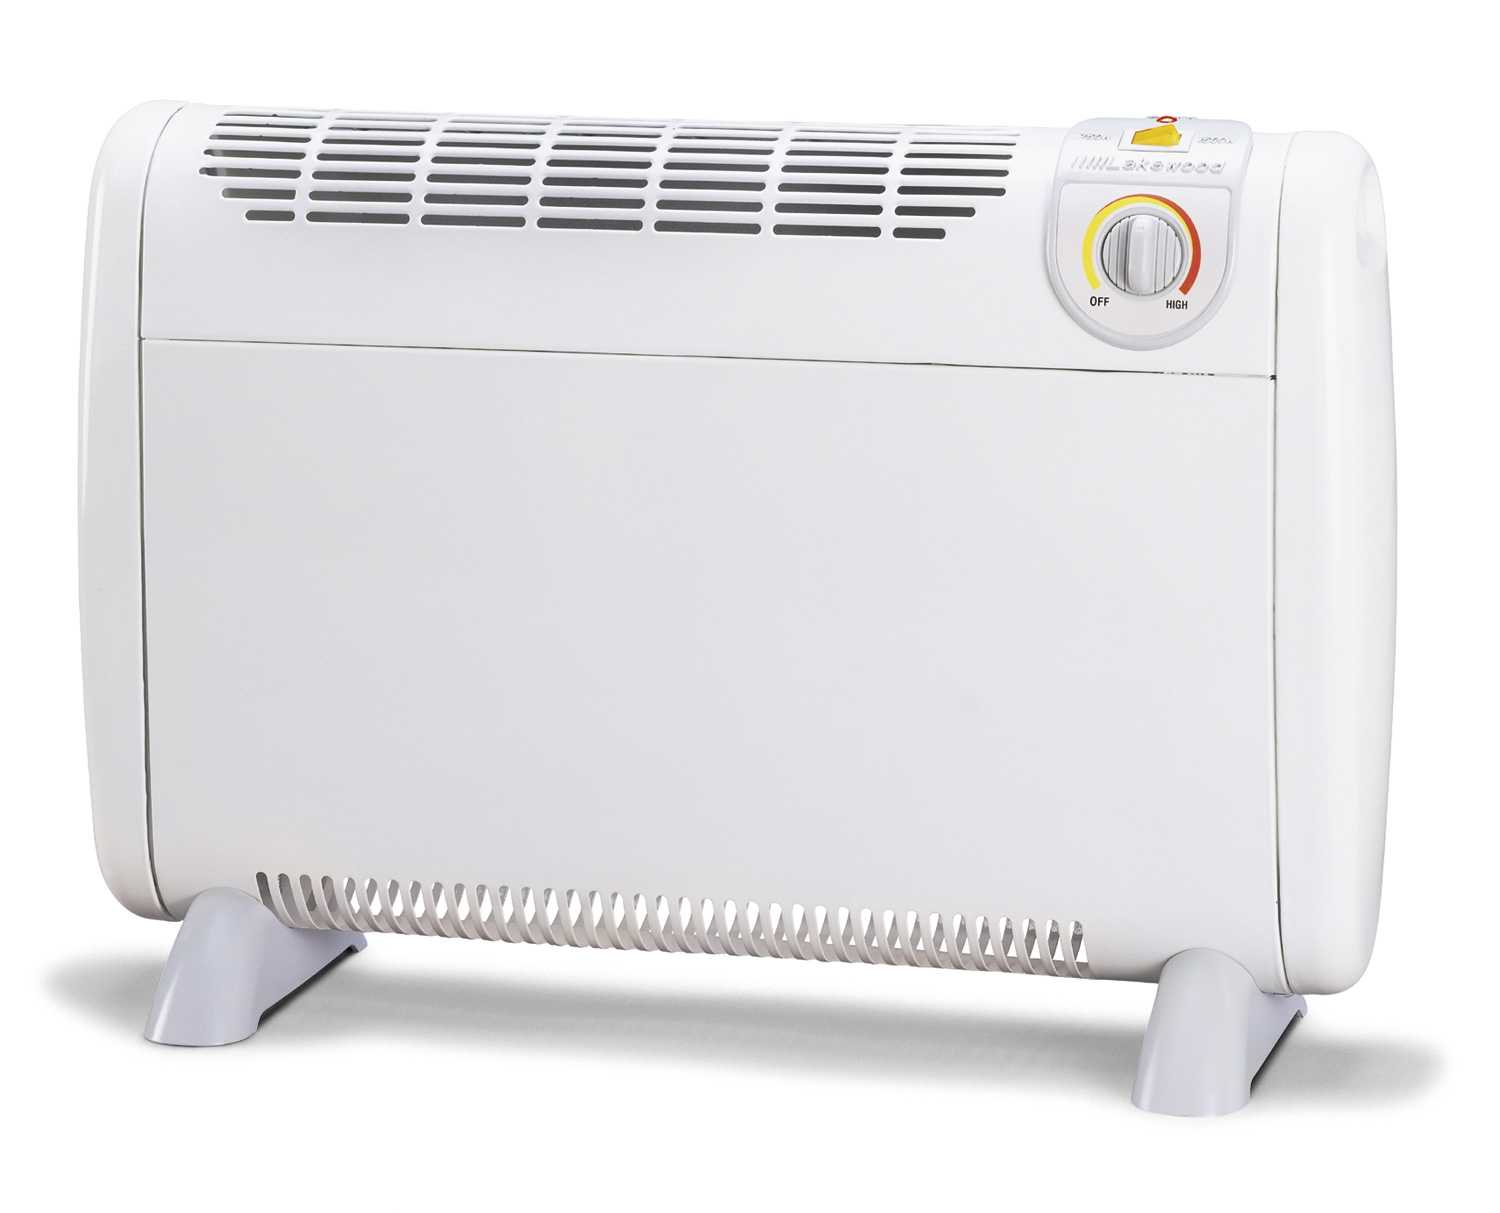 Portable Electric Heater For Garage (View 1 of 5)